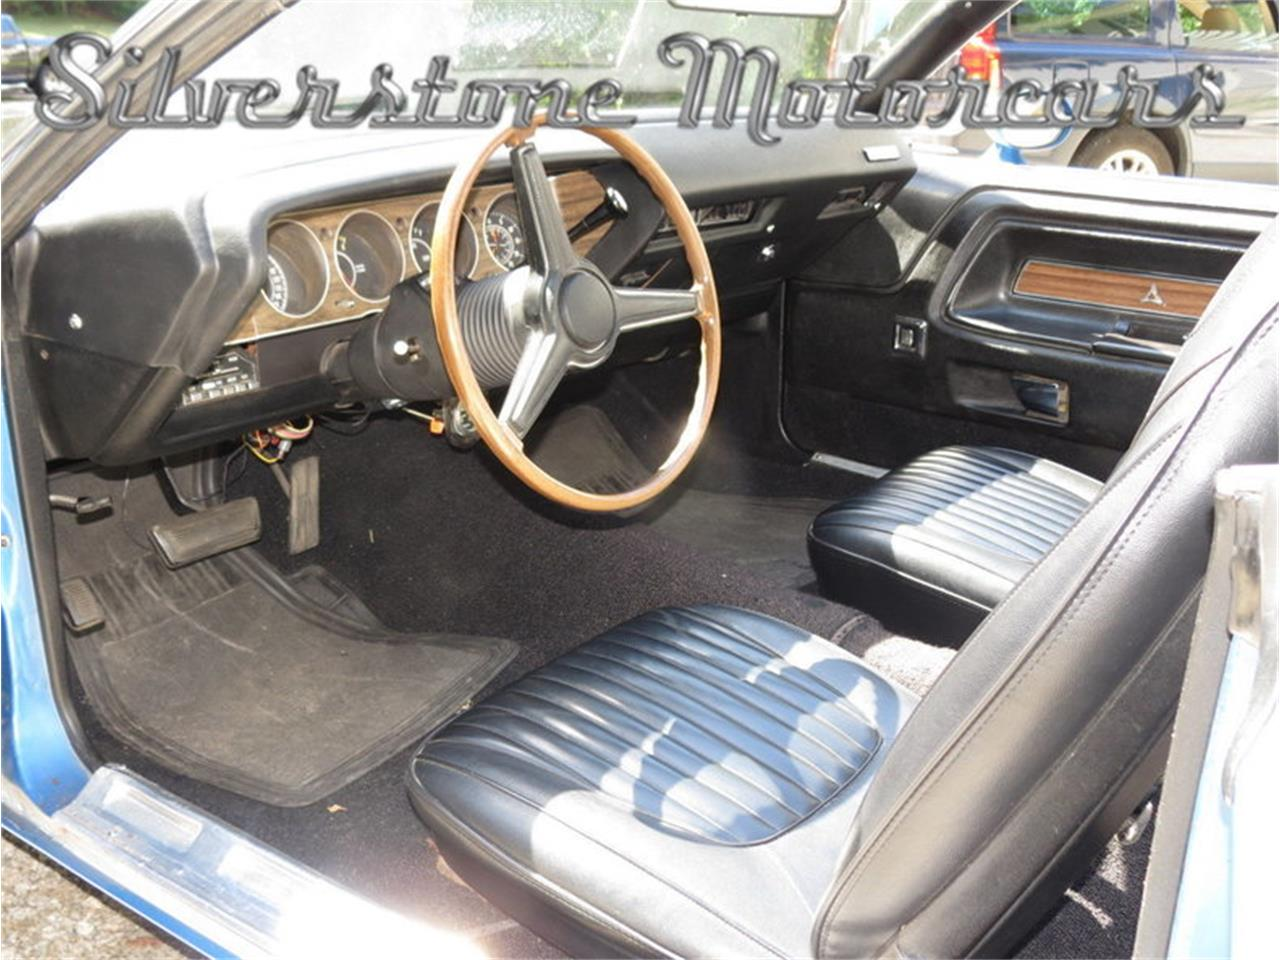 Large Picture of 1971 Dodge Challenger located in Massachusetts - $45,900.00 Offered by Silverstone Motorcars - J0QS